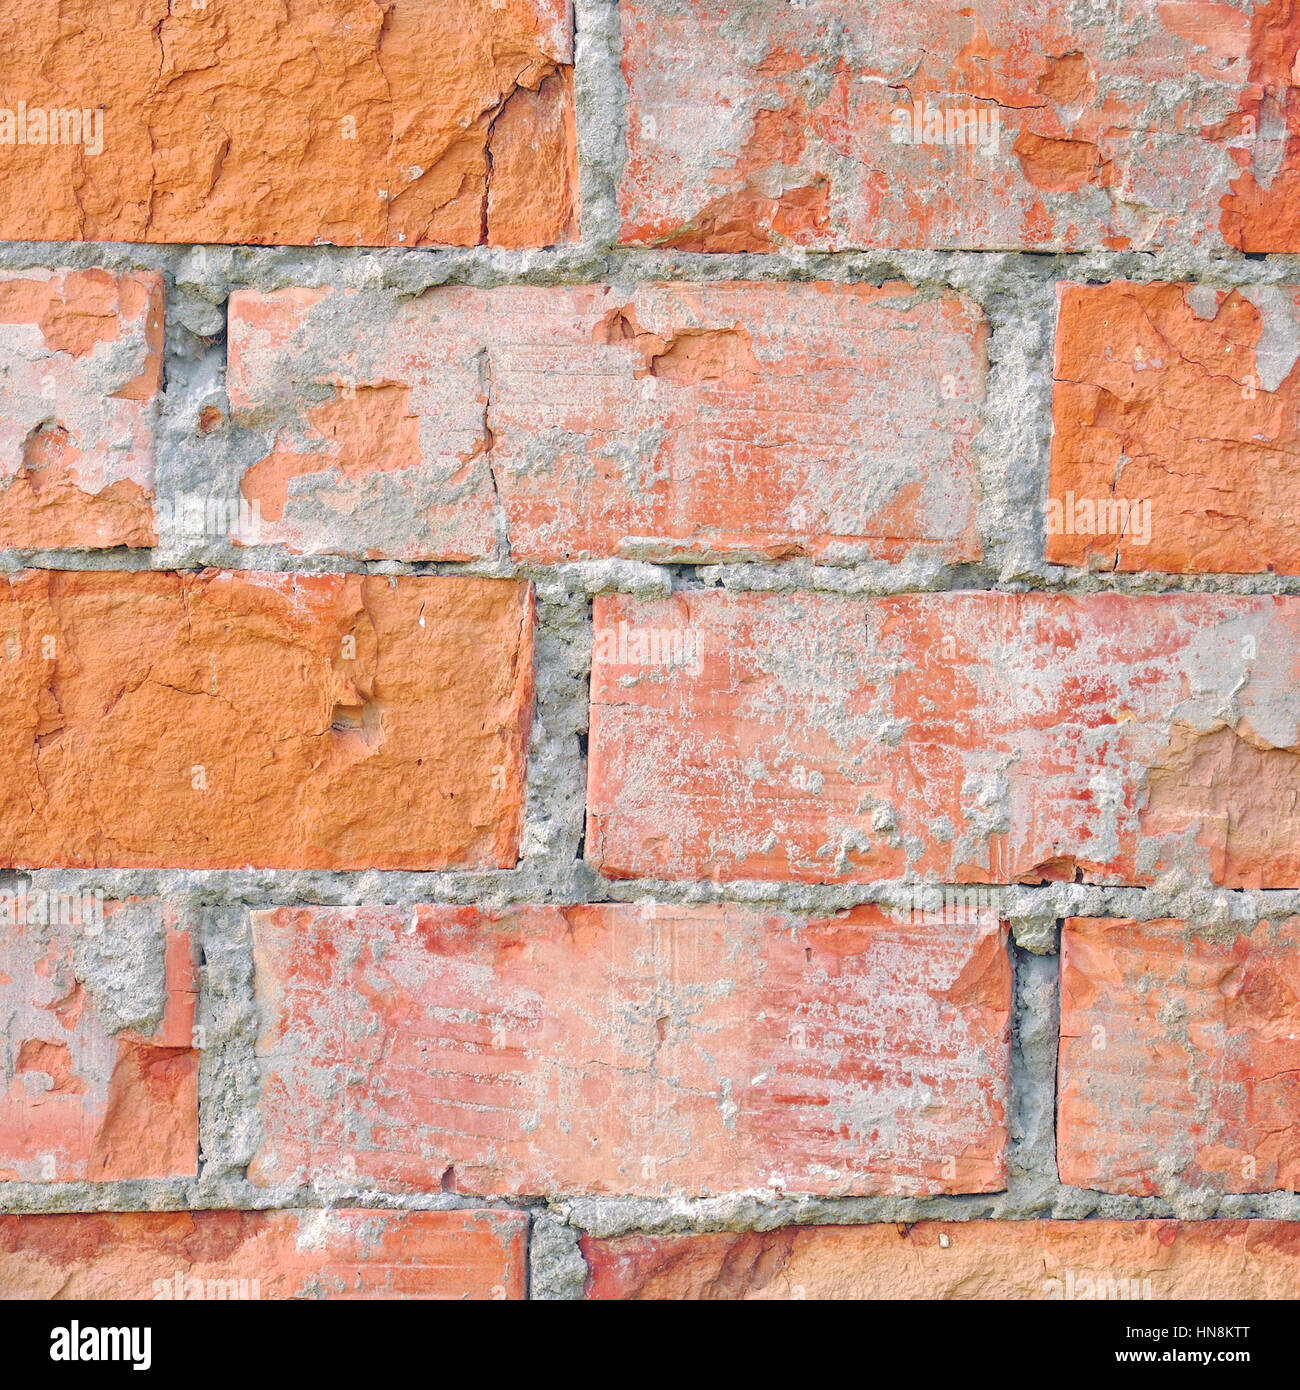 Light Red Brick Wall Texture Macro Closeup Old Detailed Rough Grunge Cracked Textured Bricks Copy Space Background Grungy Weathered Stained Vintage